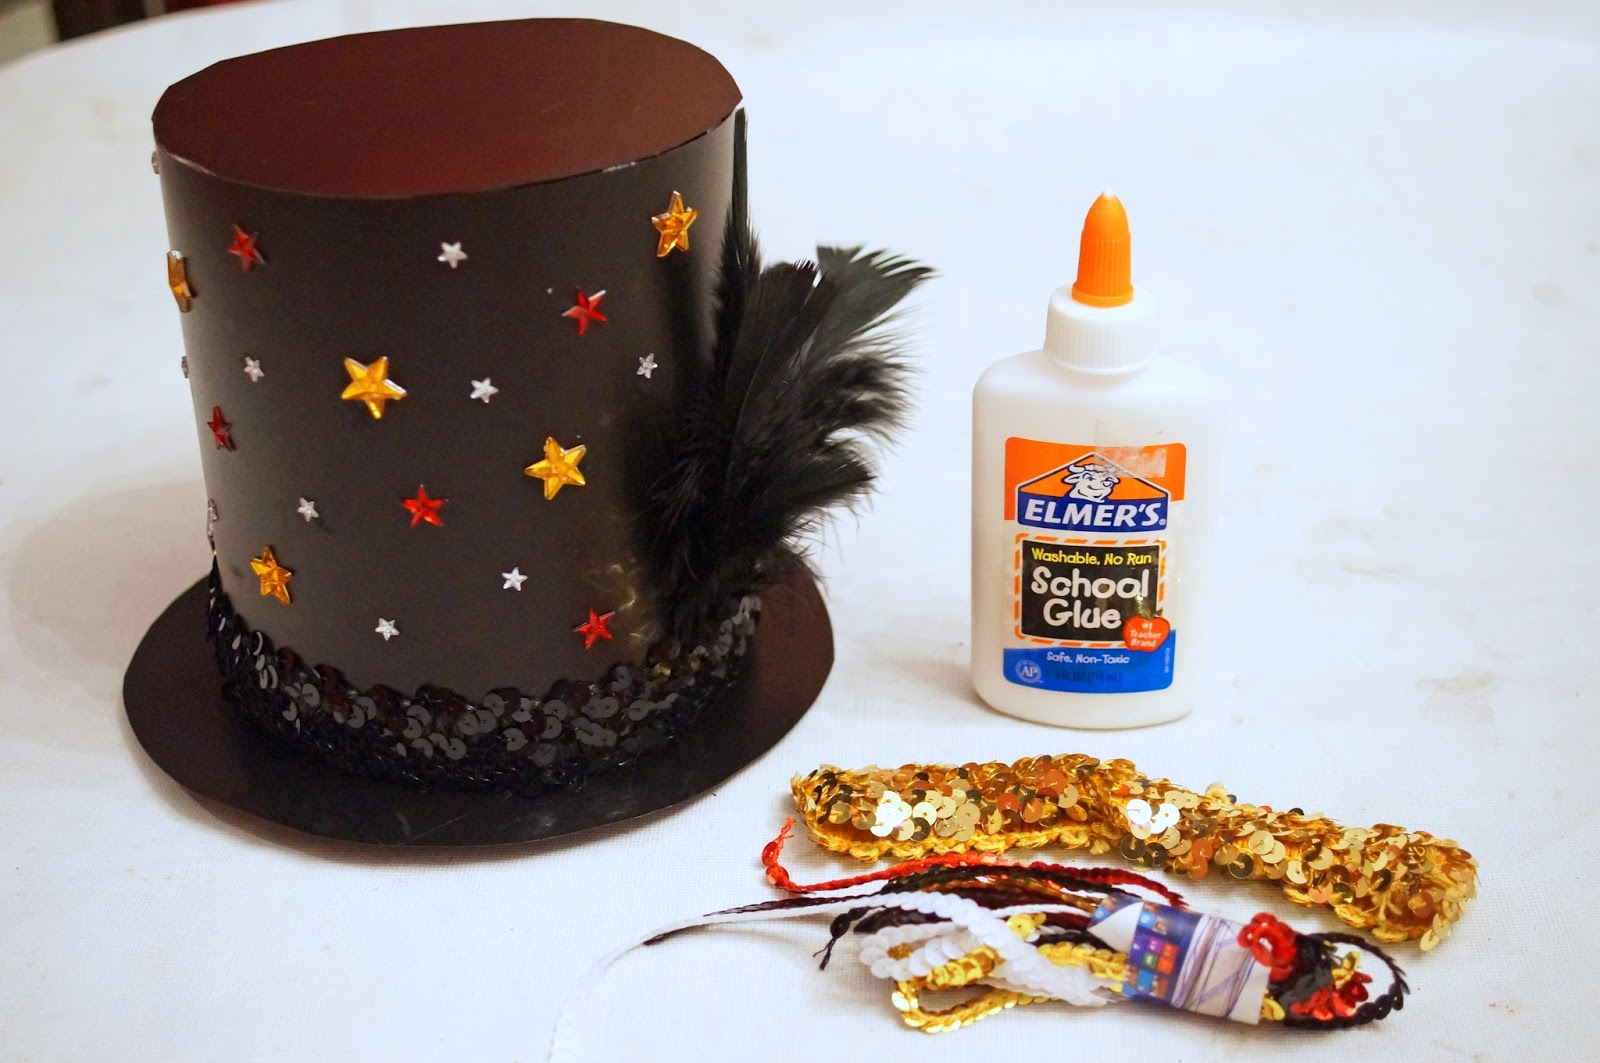 Click through to learn how to make this cute top hat at home!